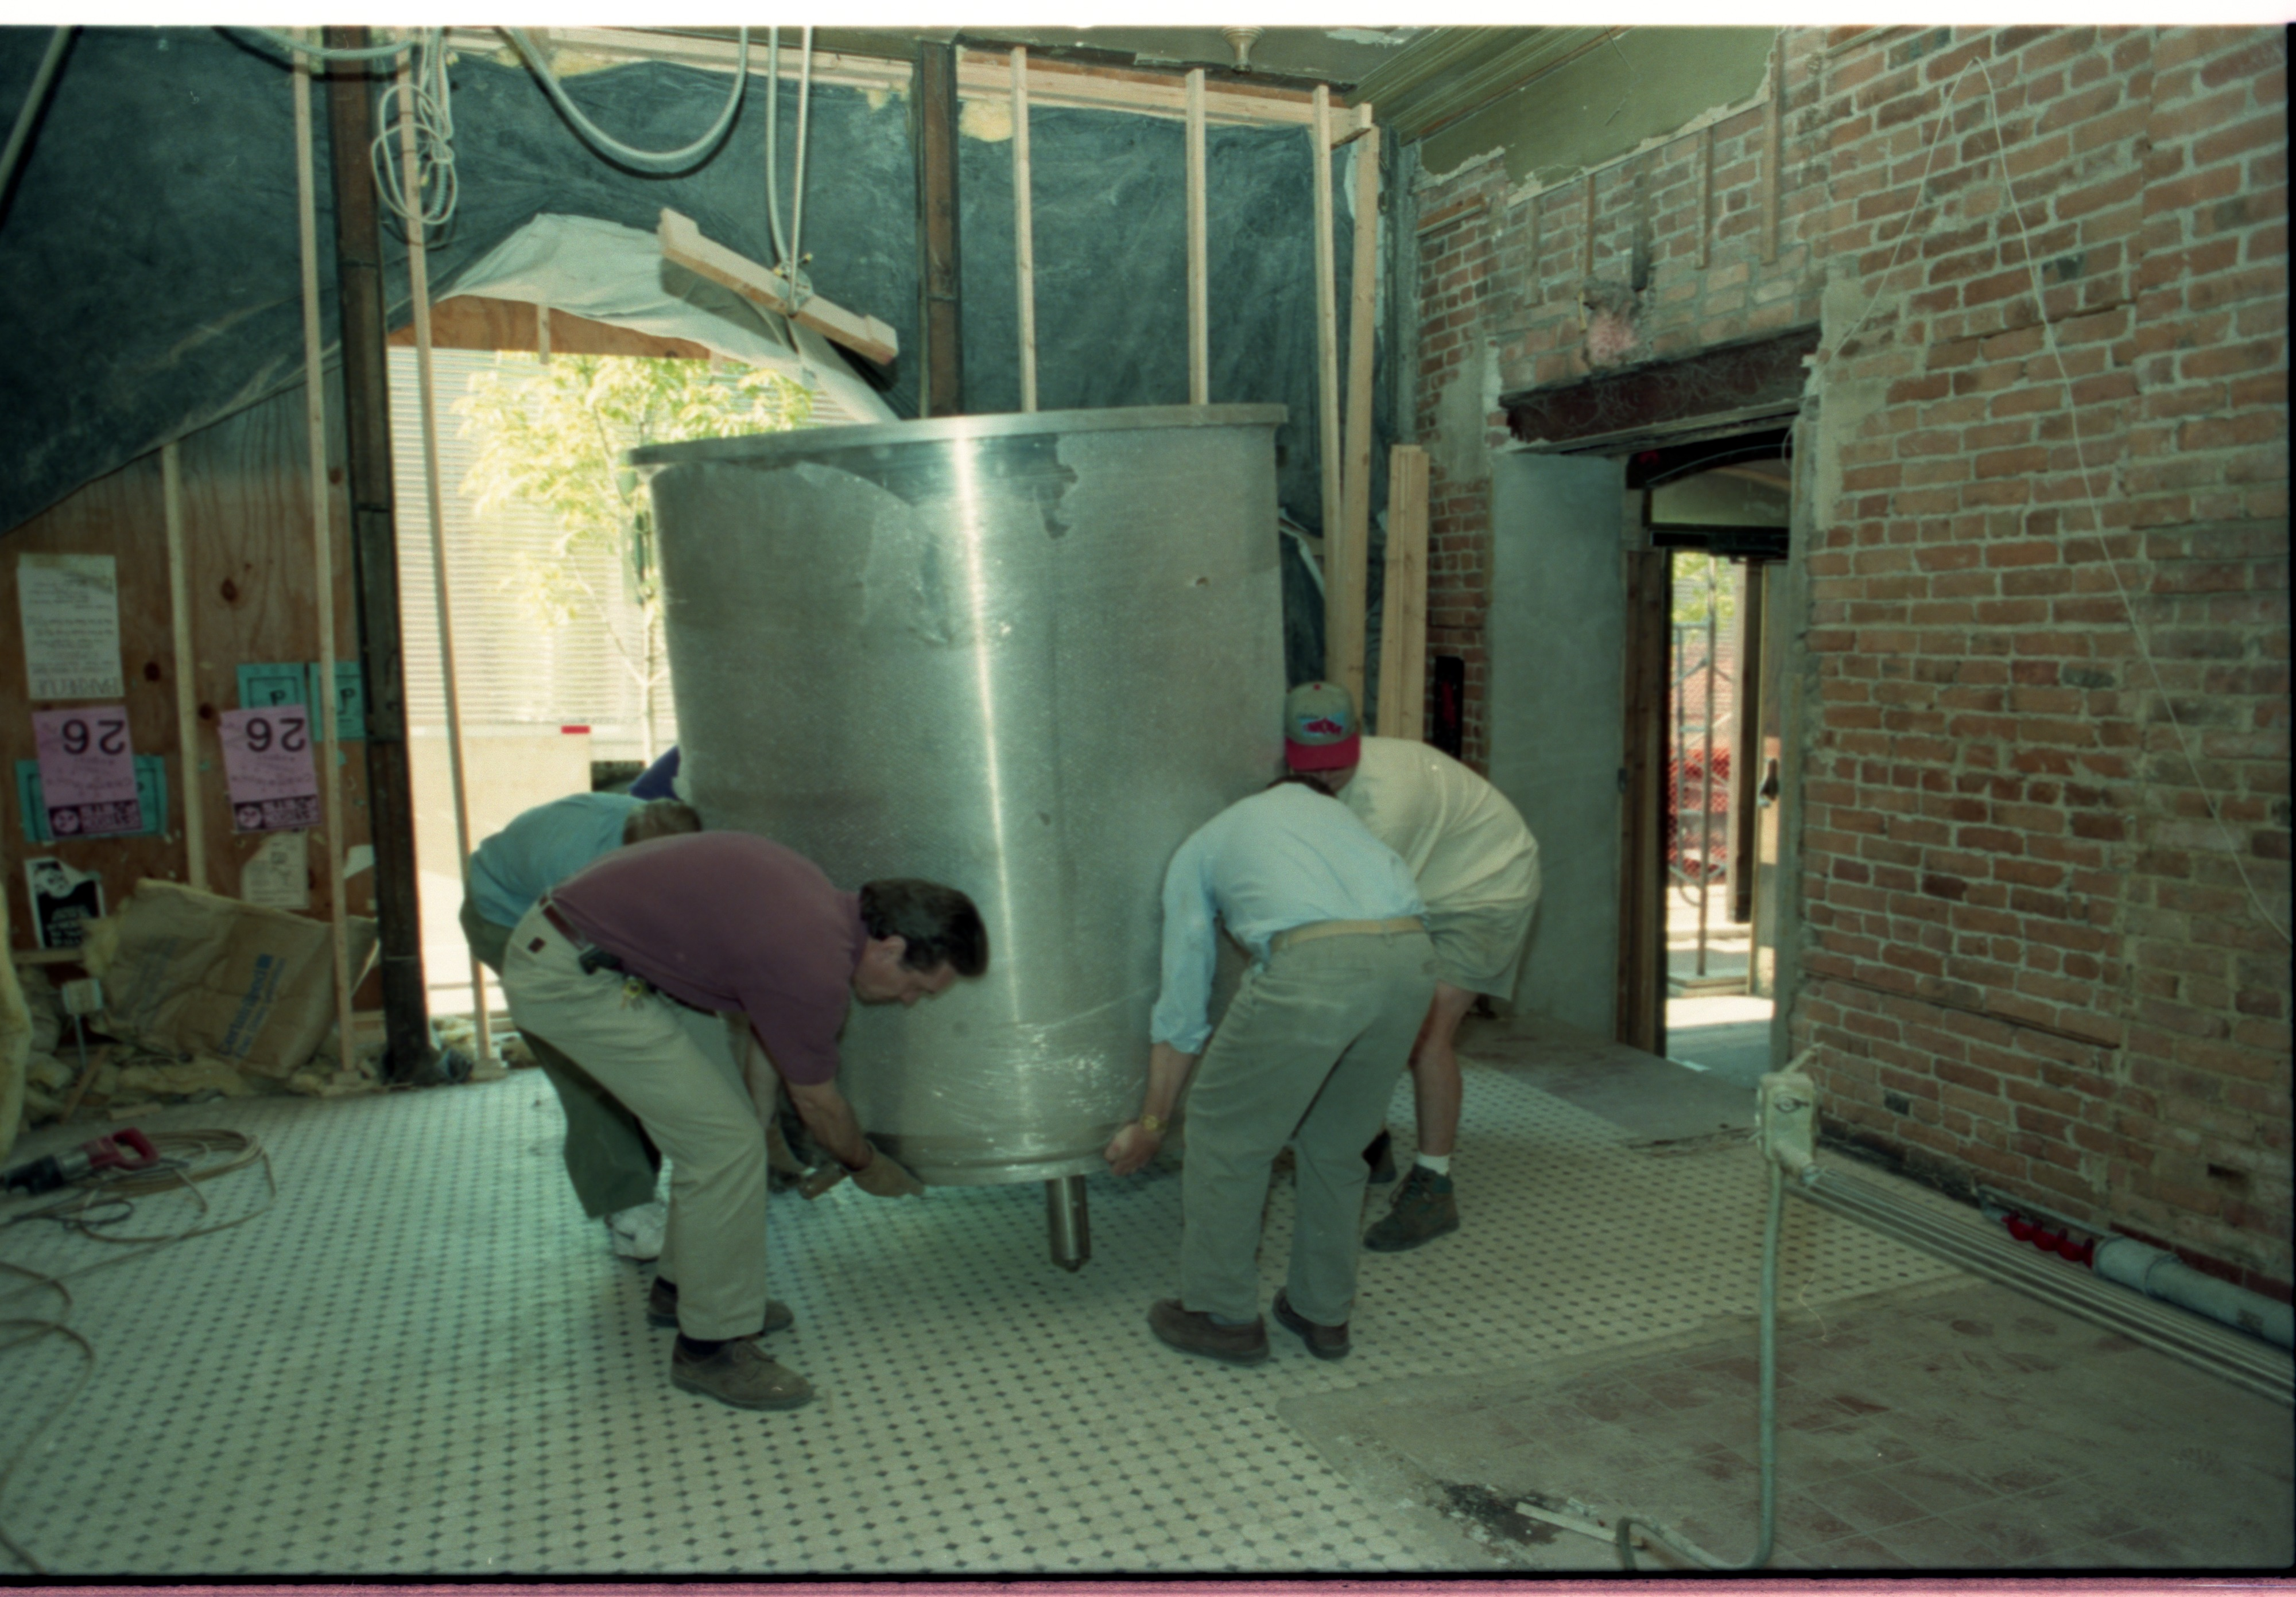 Image from Brewing Equipment Delivered To Grizzly Peak Brewing Company, May 1995